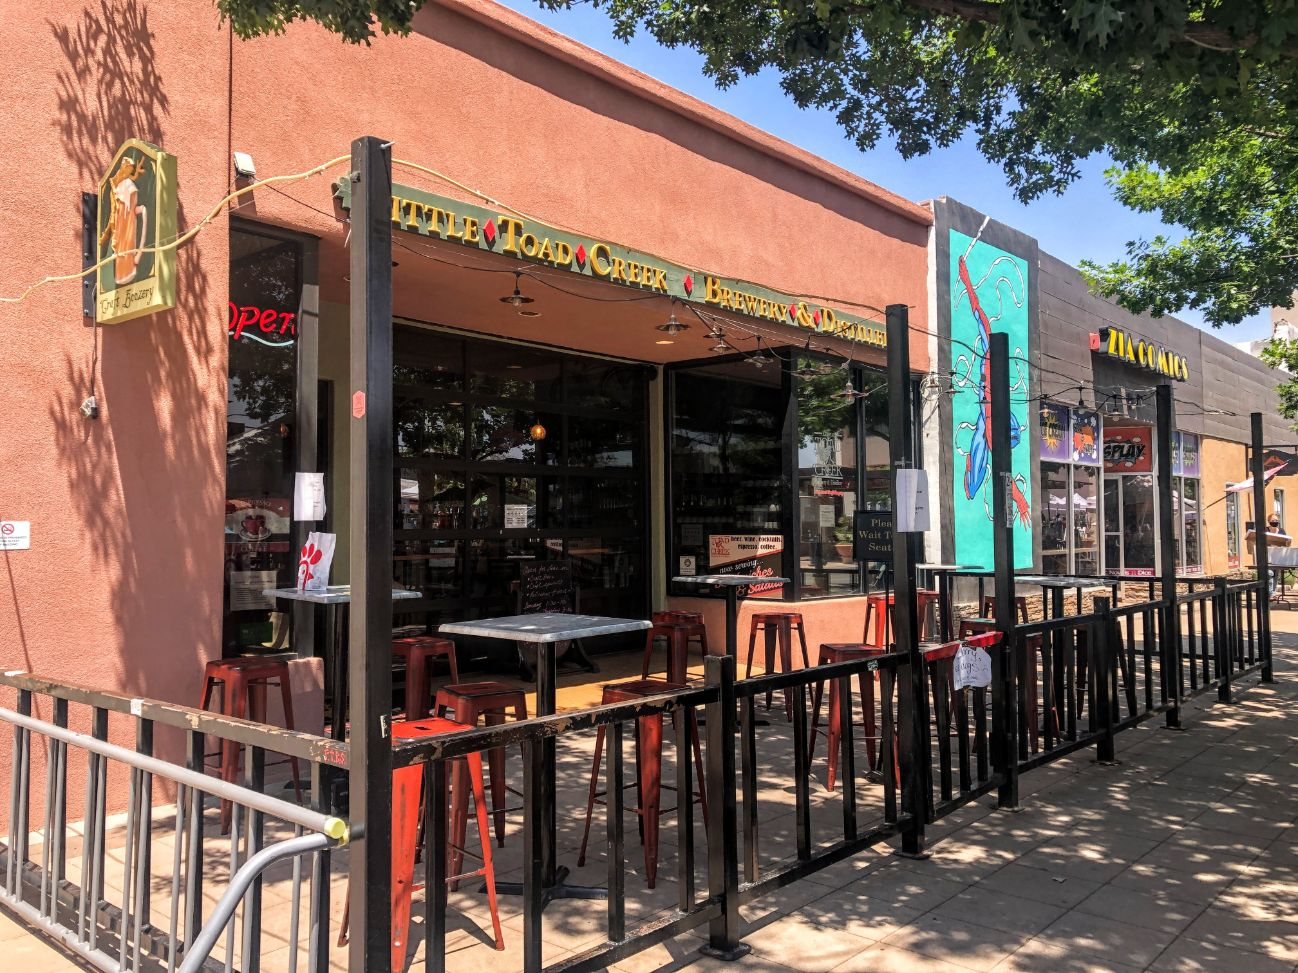 Little Toad Creek Brewery and Distiller in downtown Las Cruces